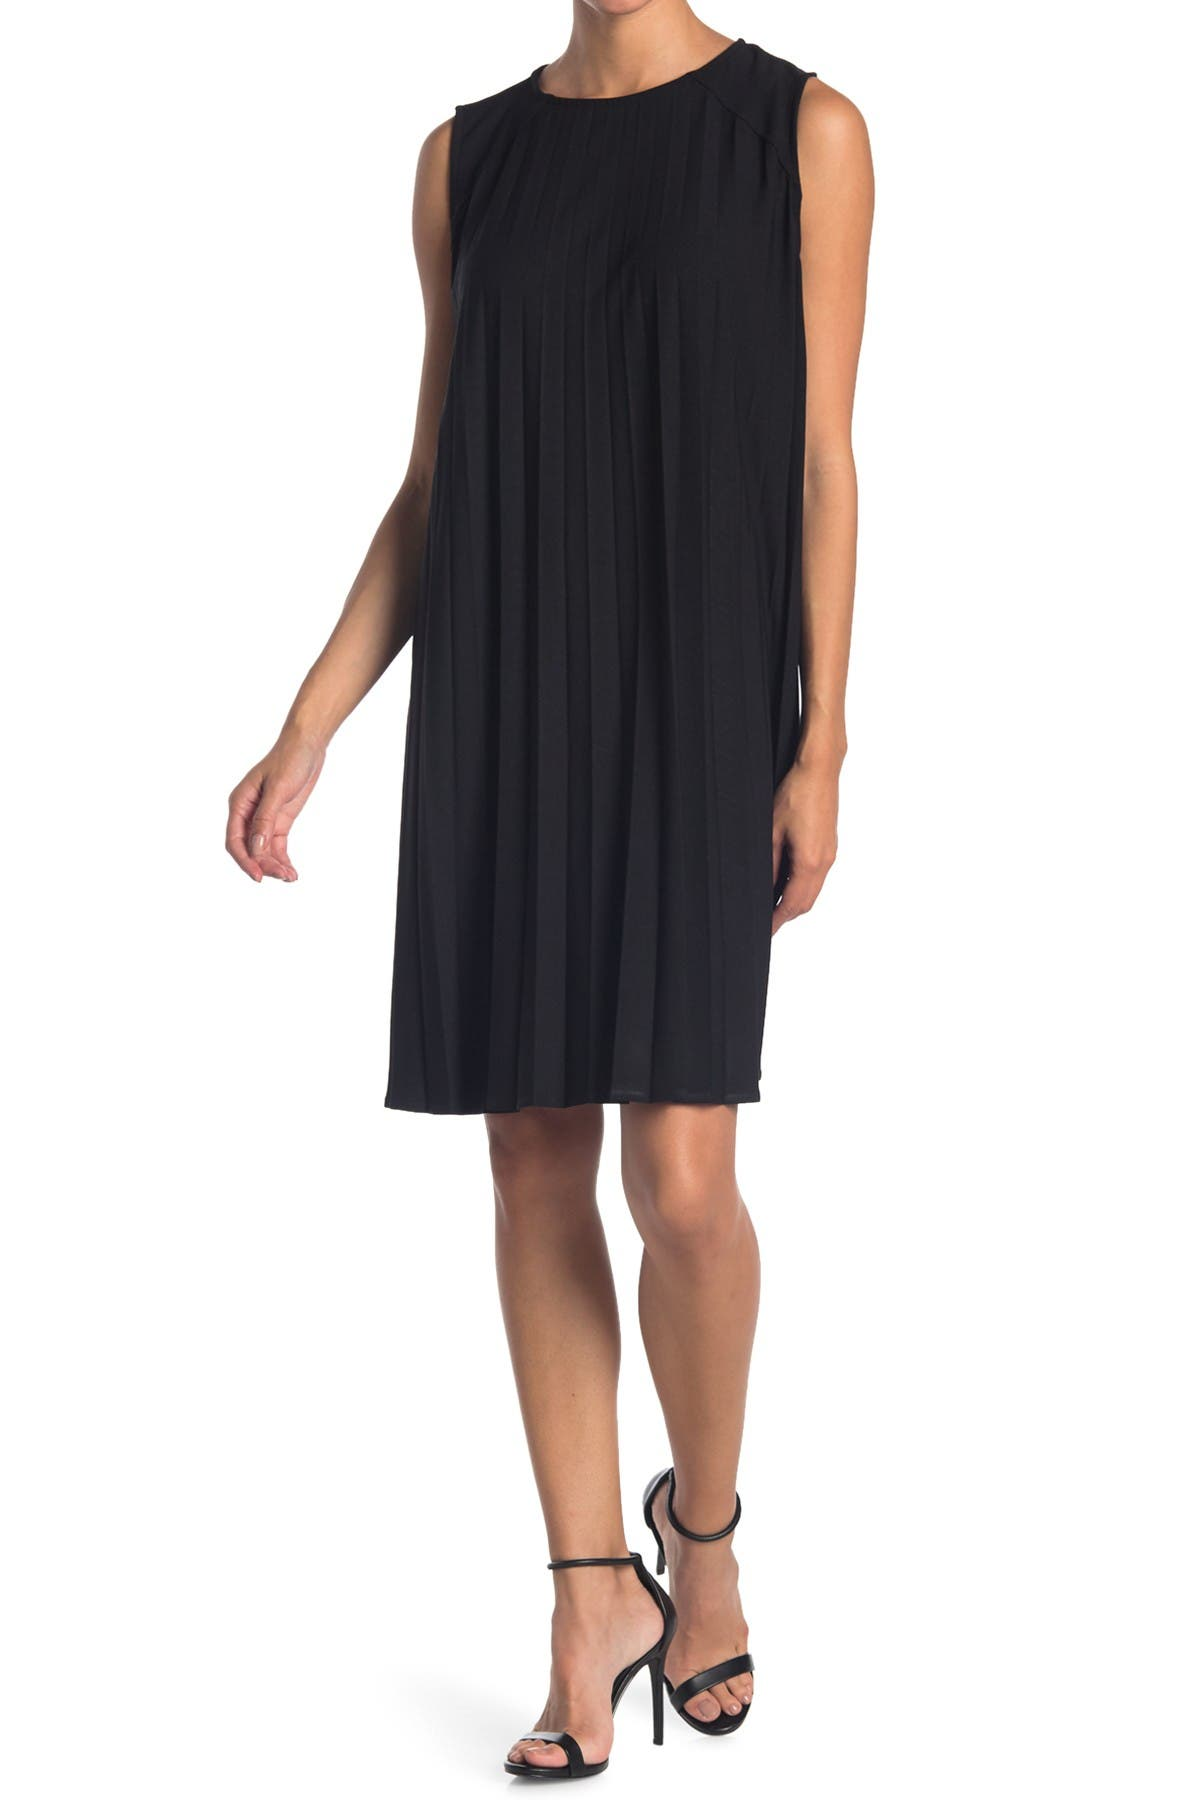 Image of TASH + SOPHIE Pleated Shift Dress